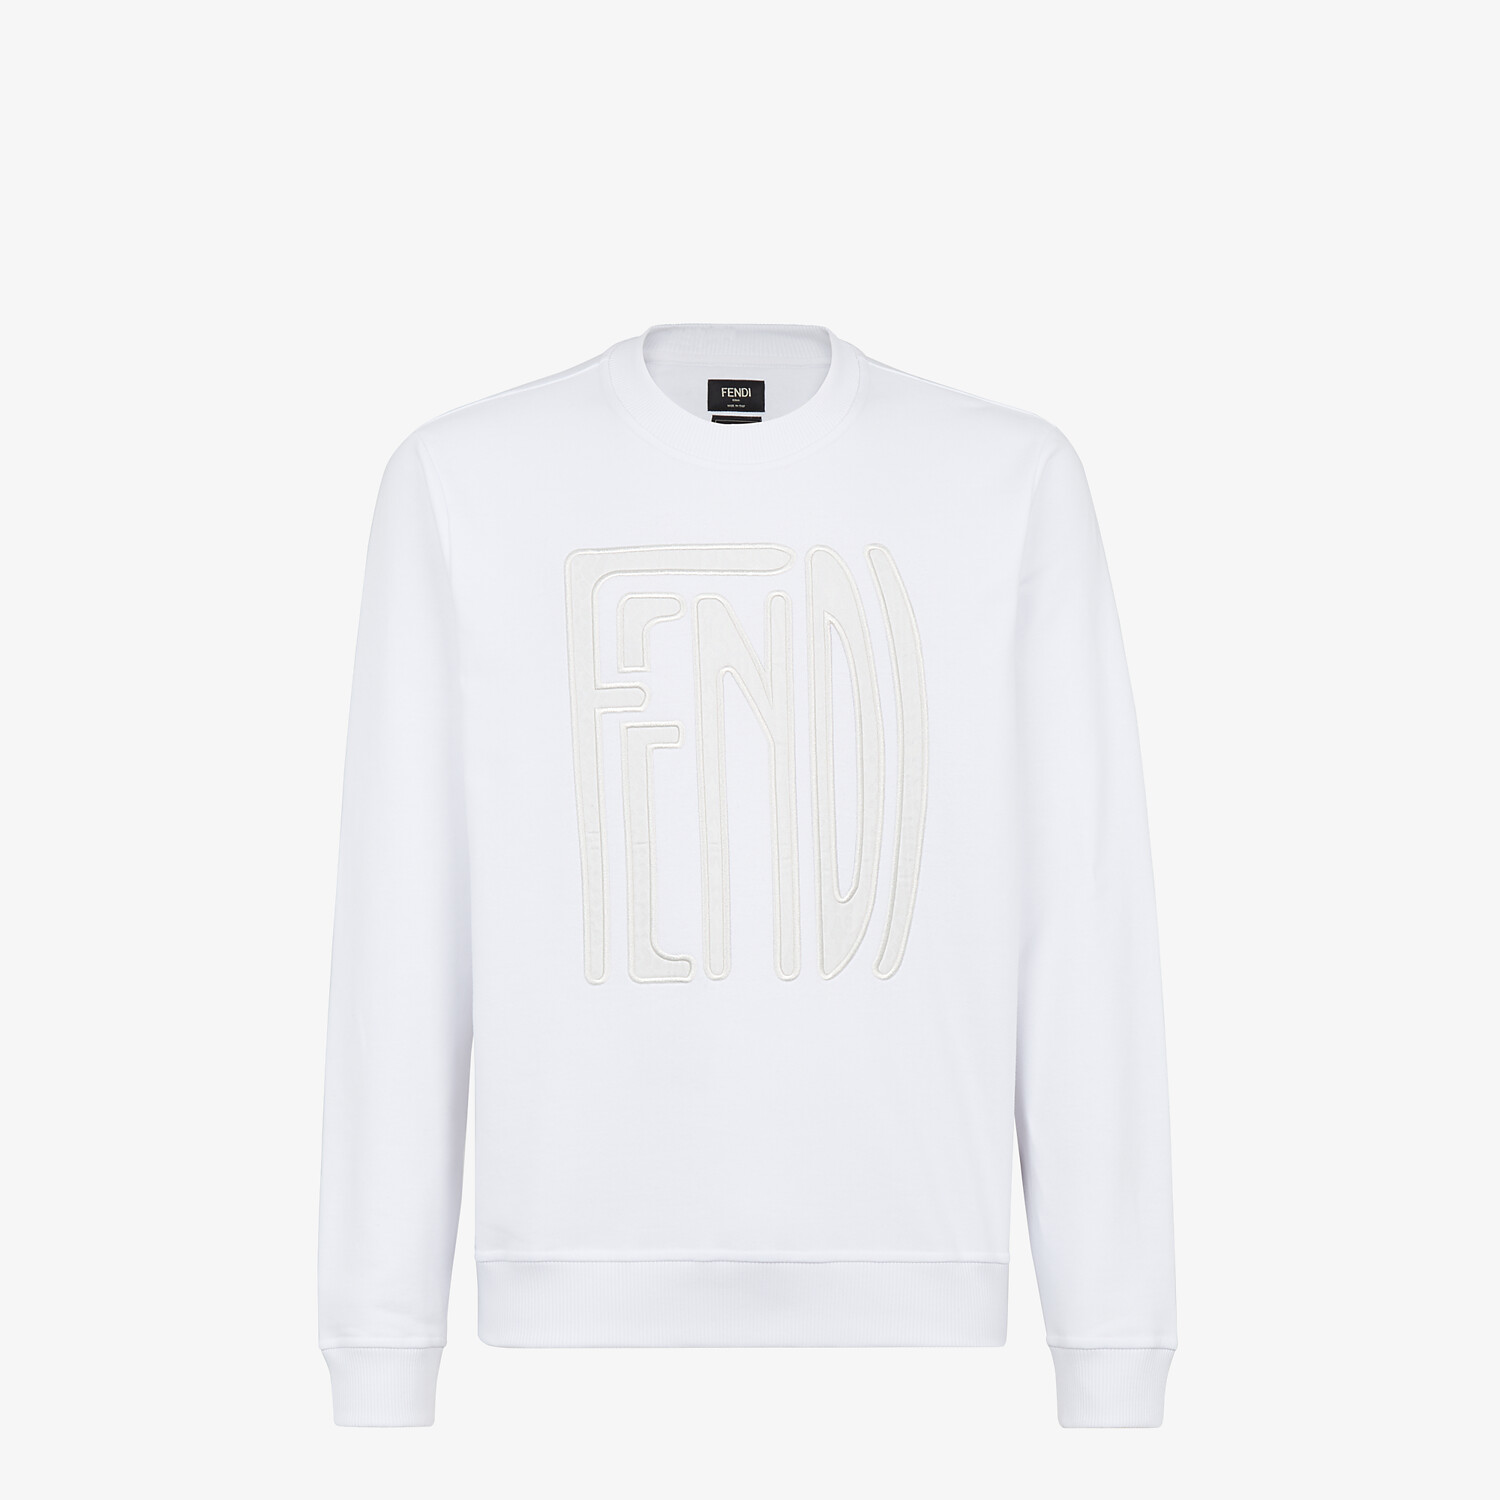 FENDI SWEATSHIRT - Fendi X Anrealage cotton sweatshirt - view 1 detail